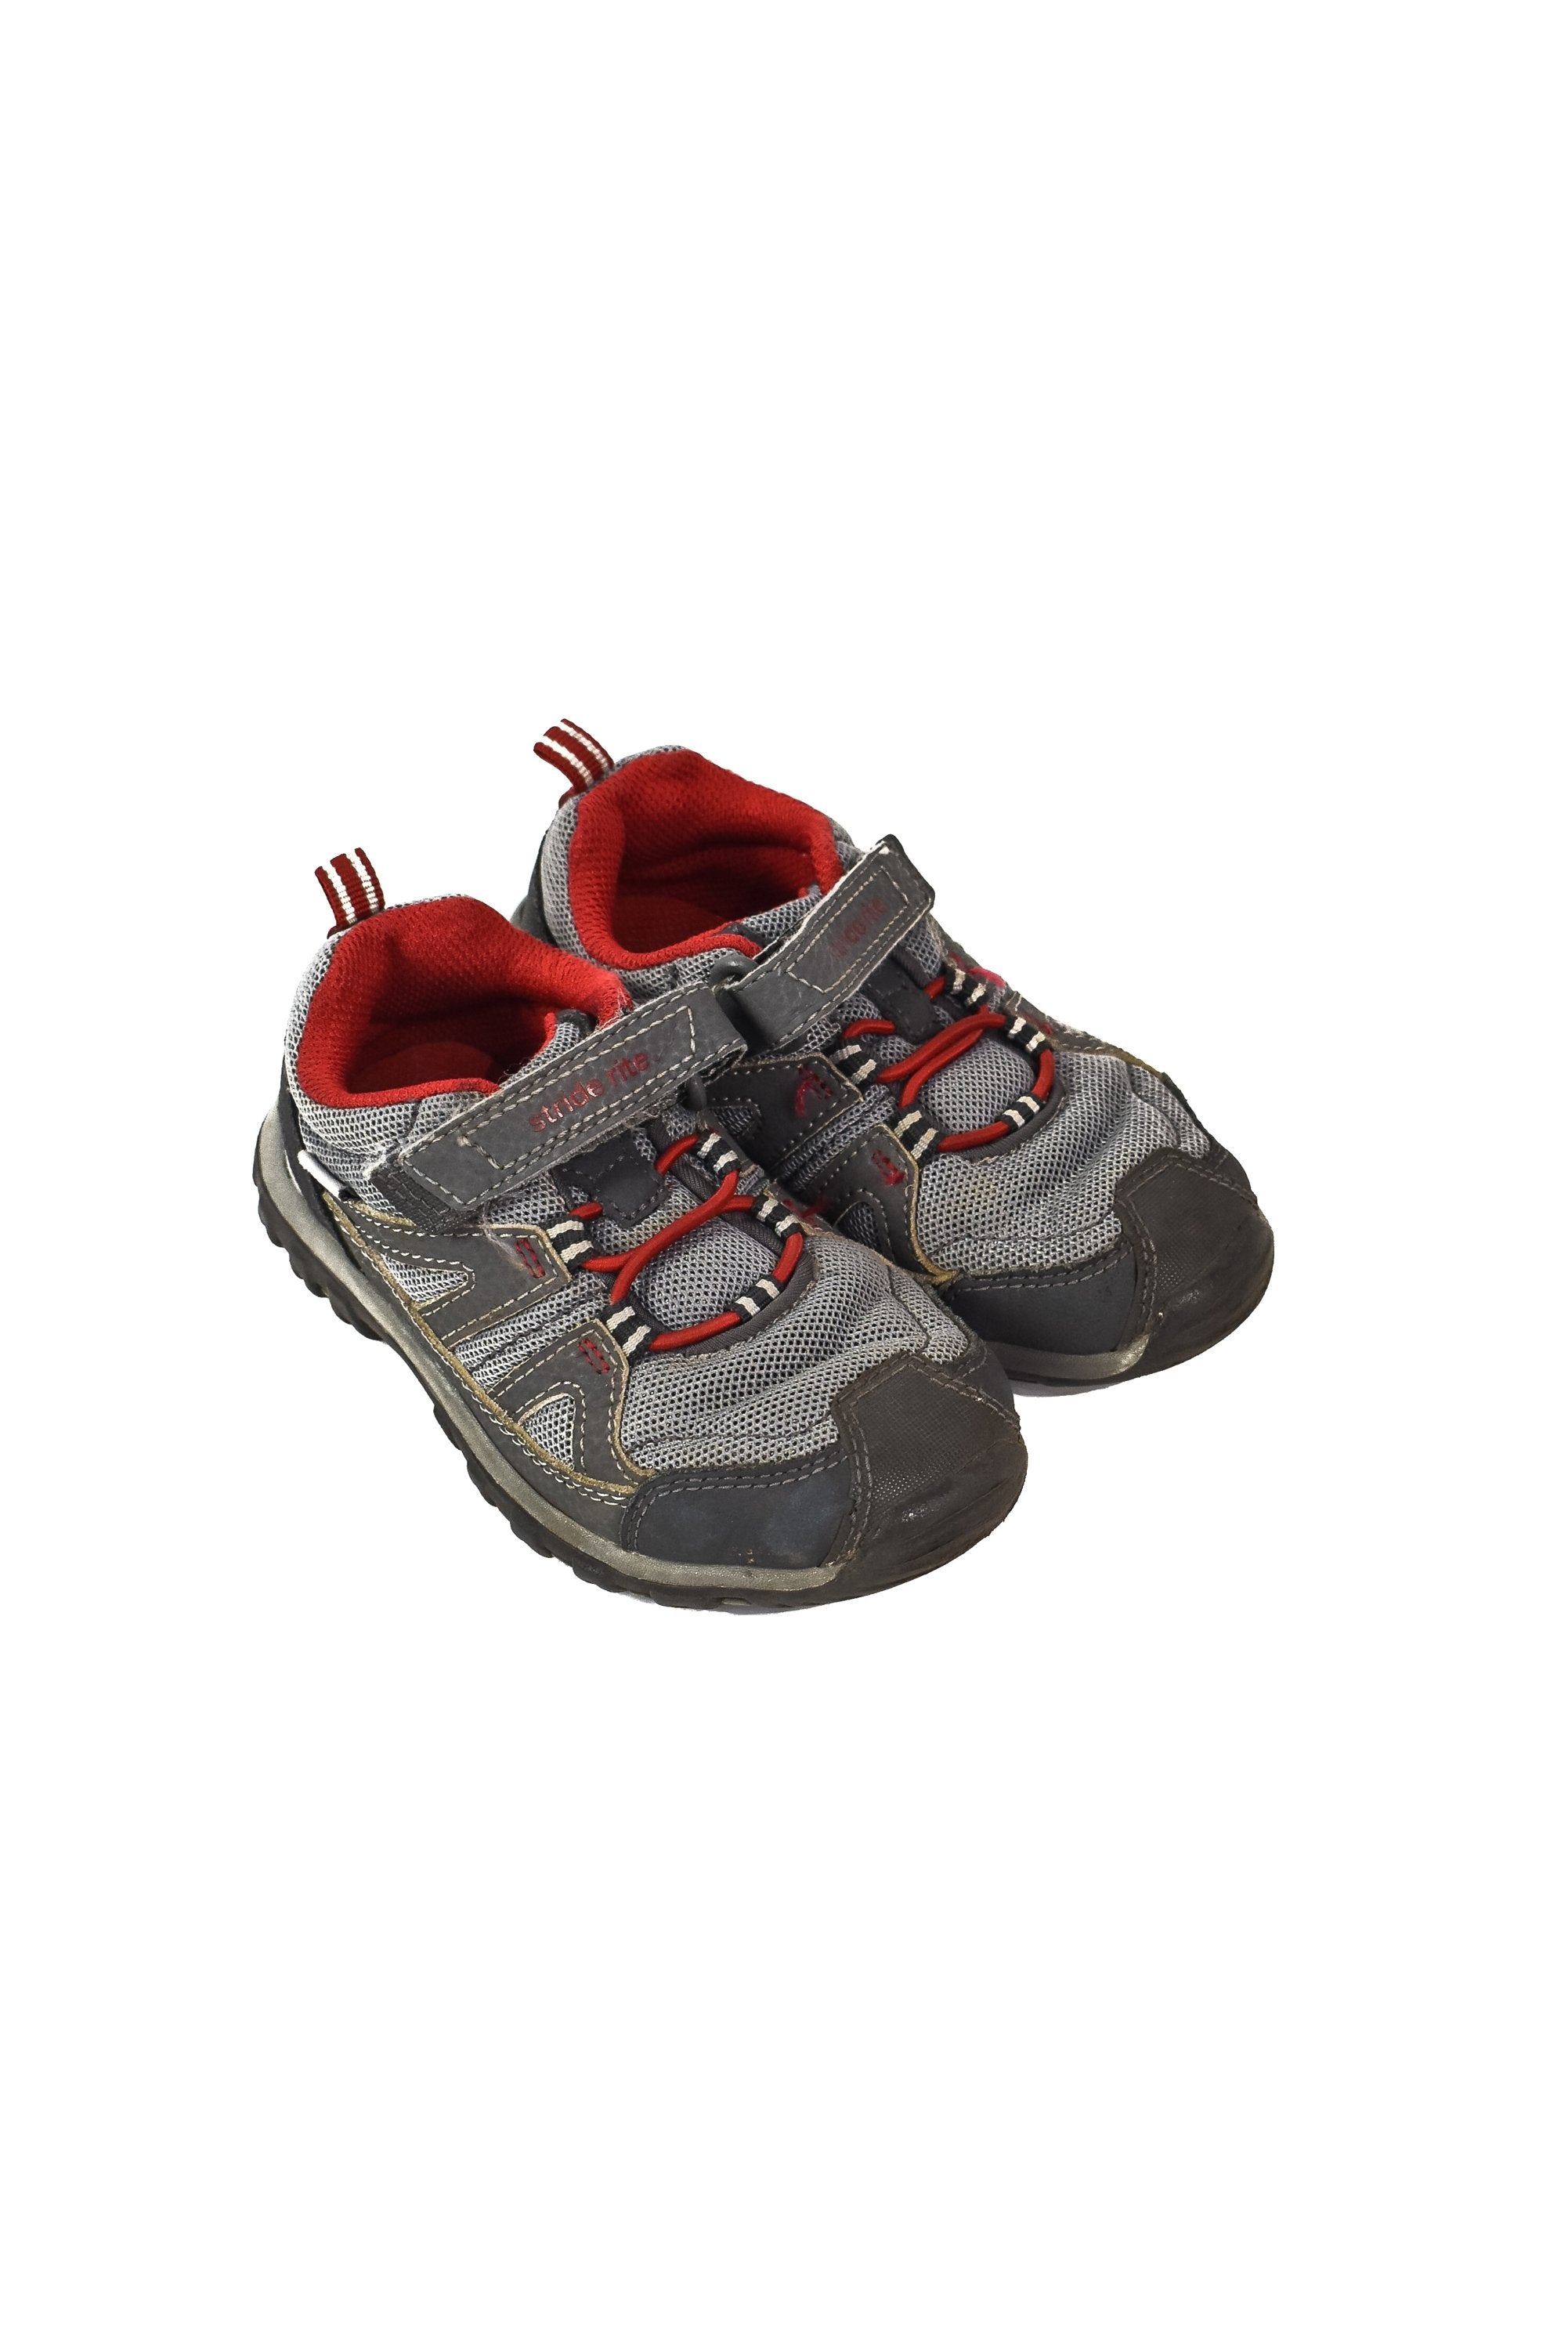 10042692 Stride Rite Kids~Sneakers 4T (EU 26.5) at Retykle